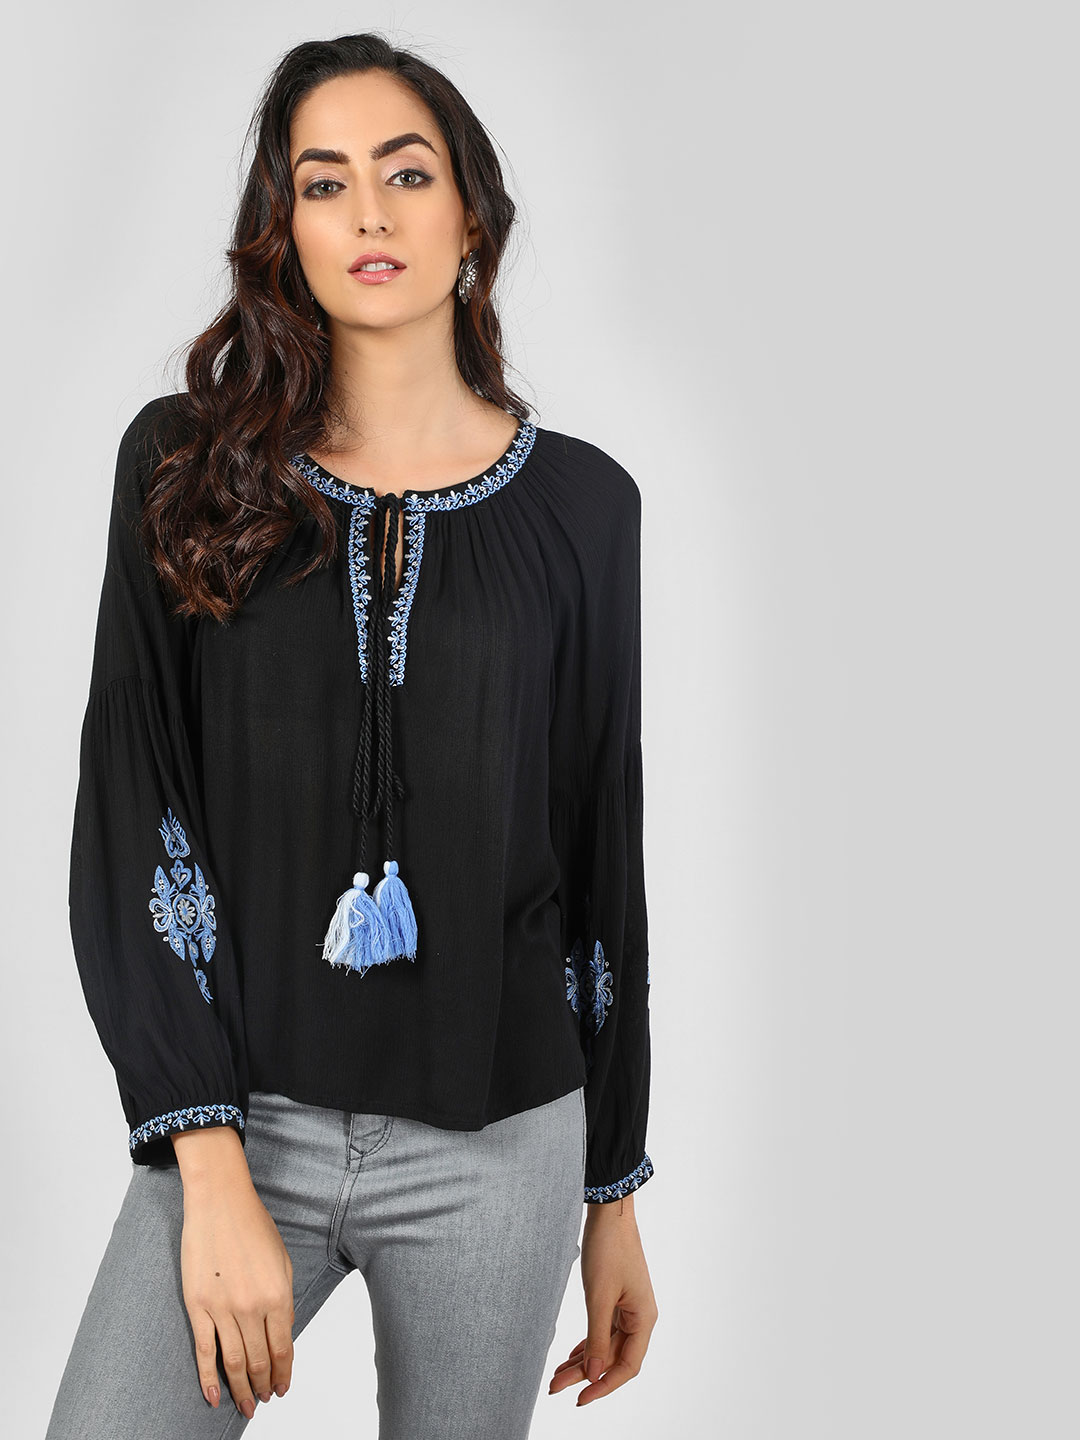 Sbuys Black Peasant Blouse With Embroidery 1